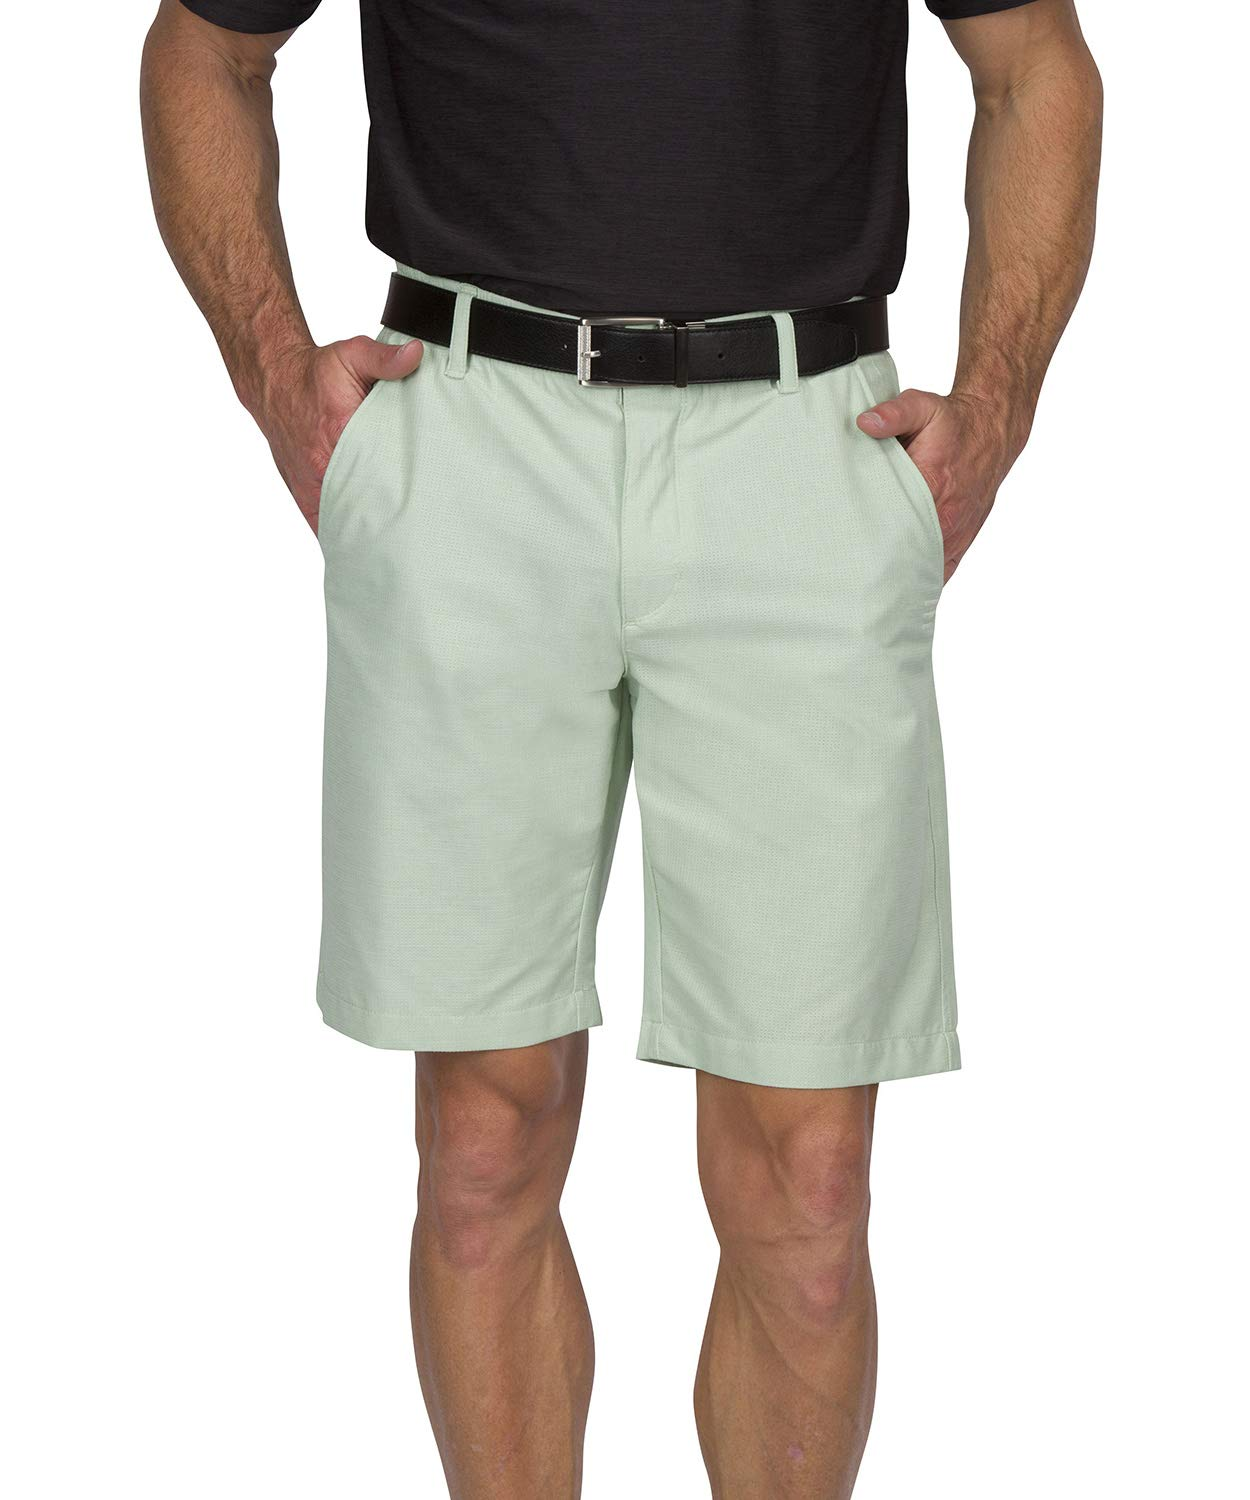 Dry Fit Golf Shorts for Men - Casual Mens Shorts Moisture Wicking - Men's Chino Shorts with Elastic Waistband Sage Green by Three Sixty Six